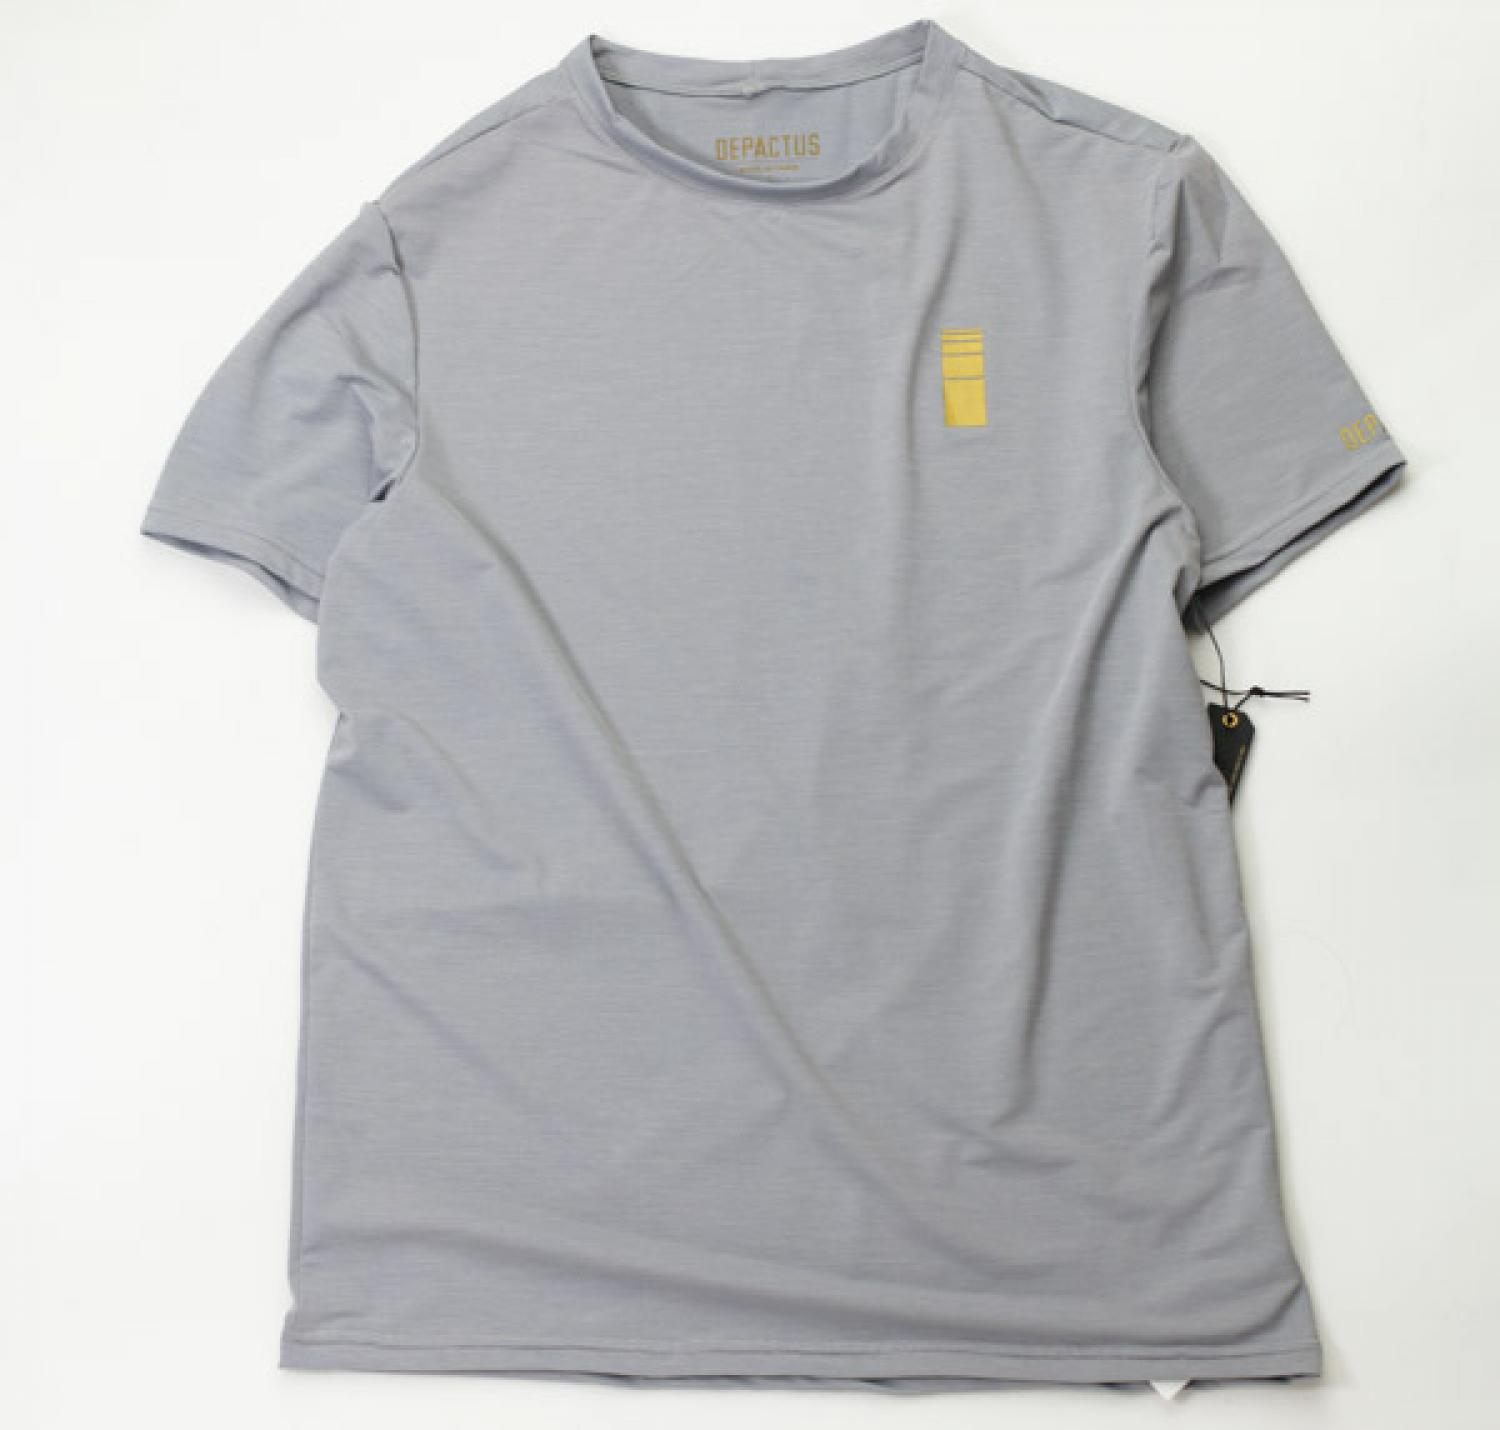 [DEPACTUS] ECLIPSE SUNGUARD TEE Light Heather